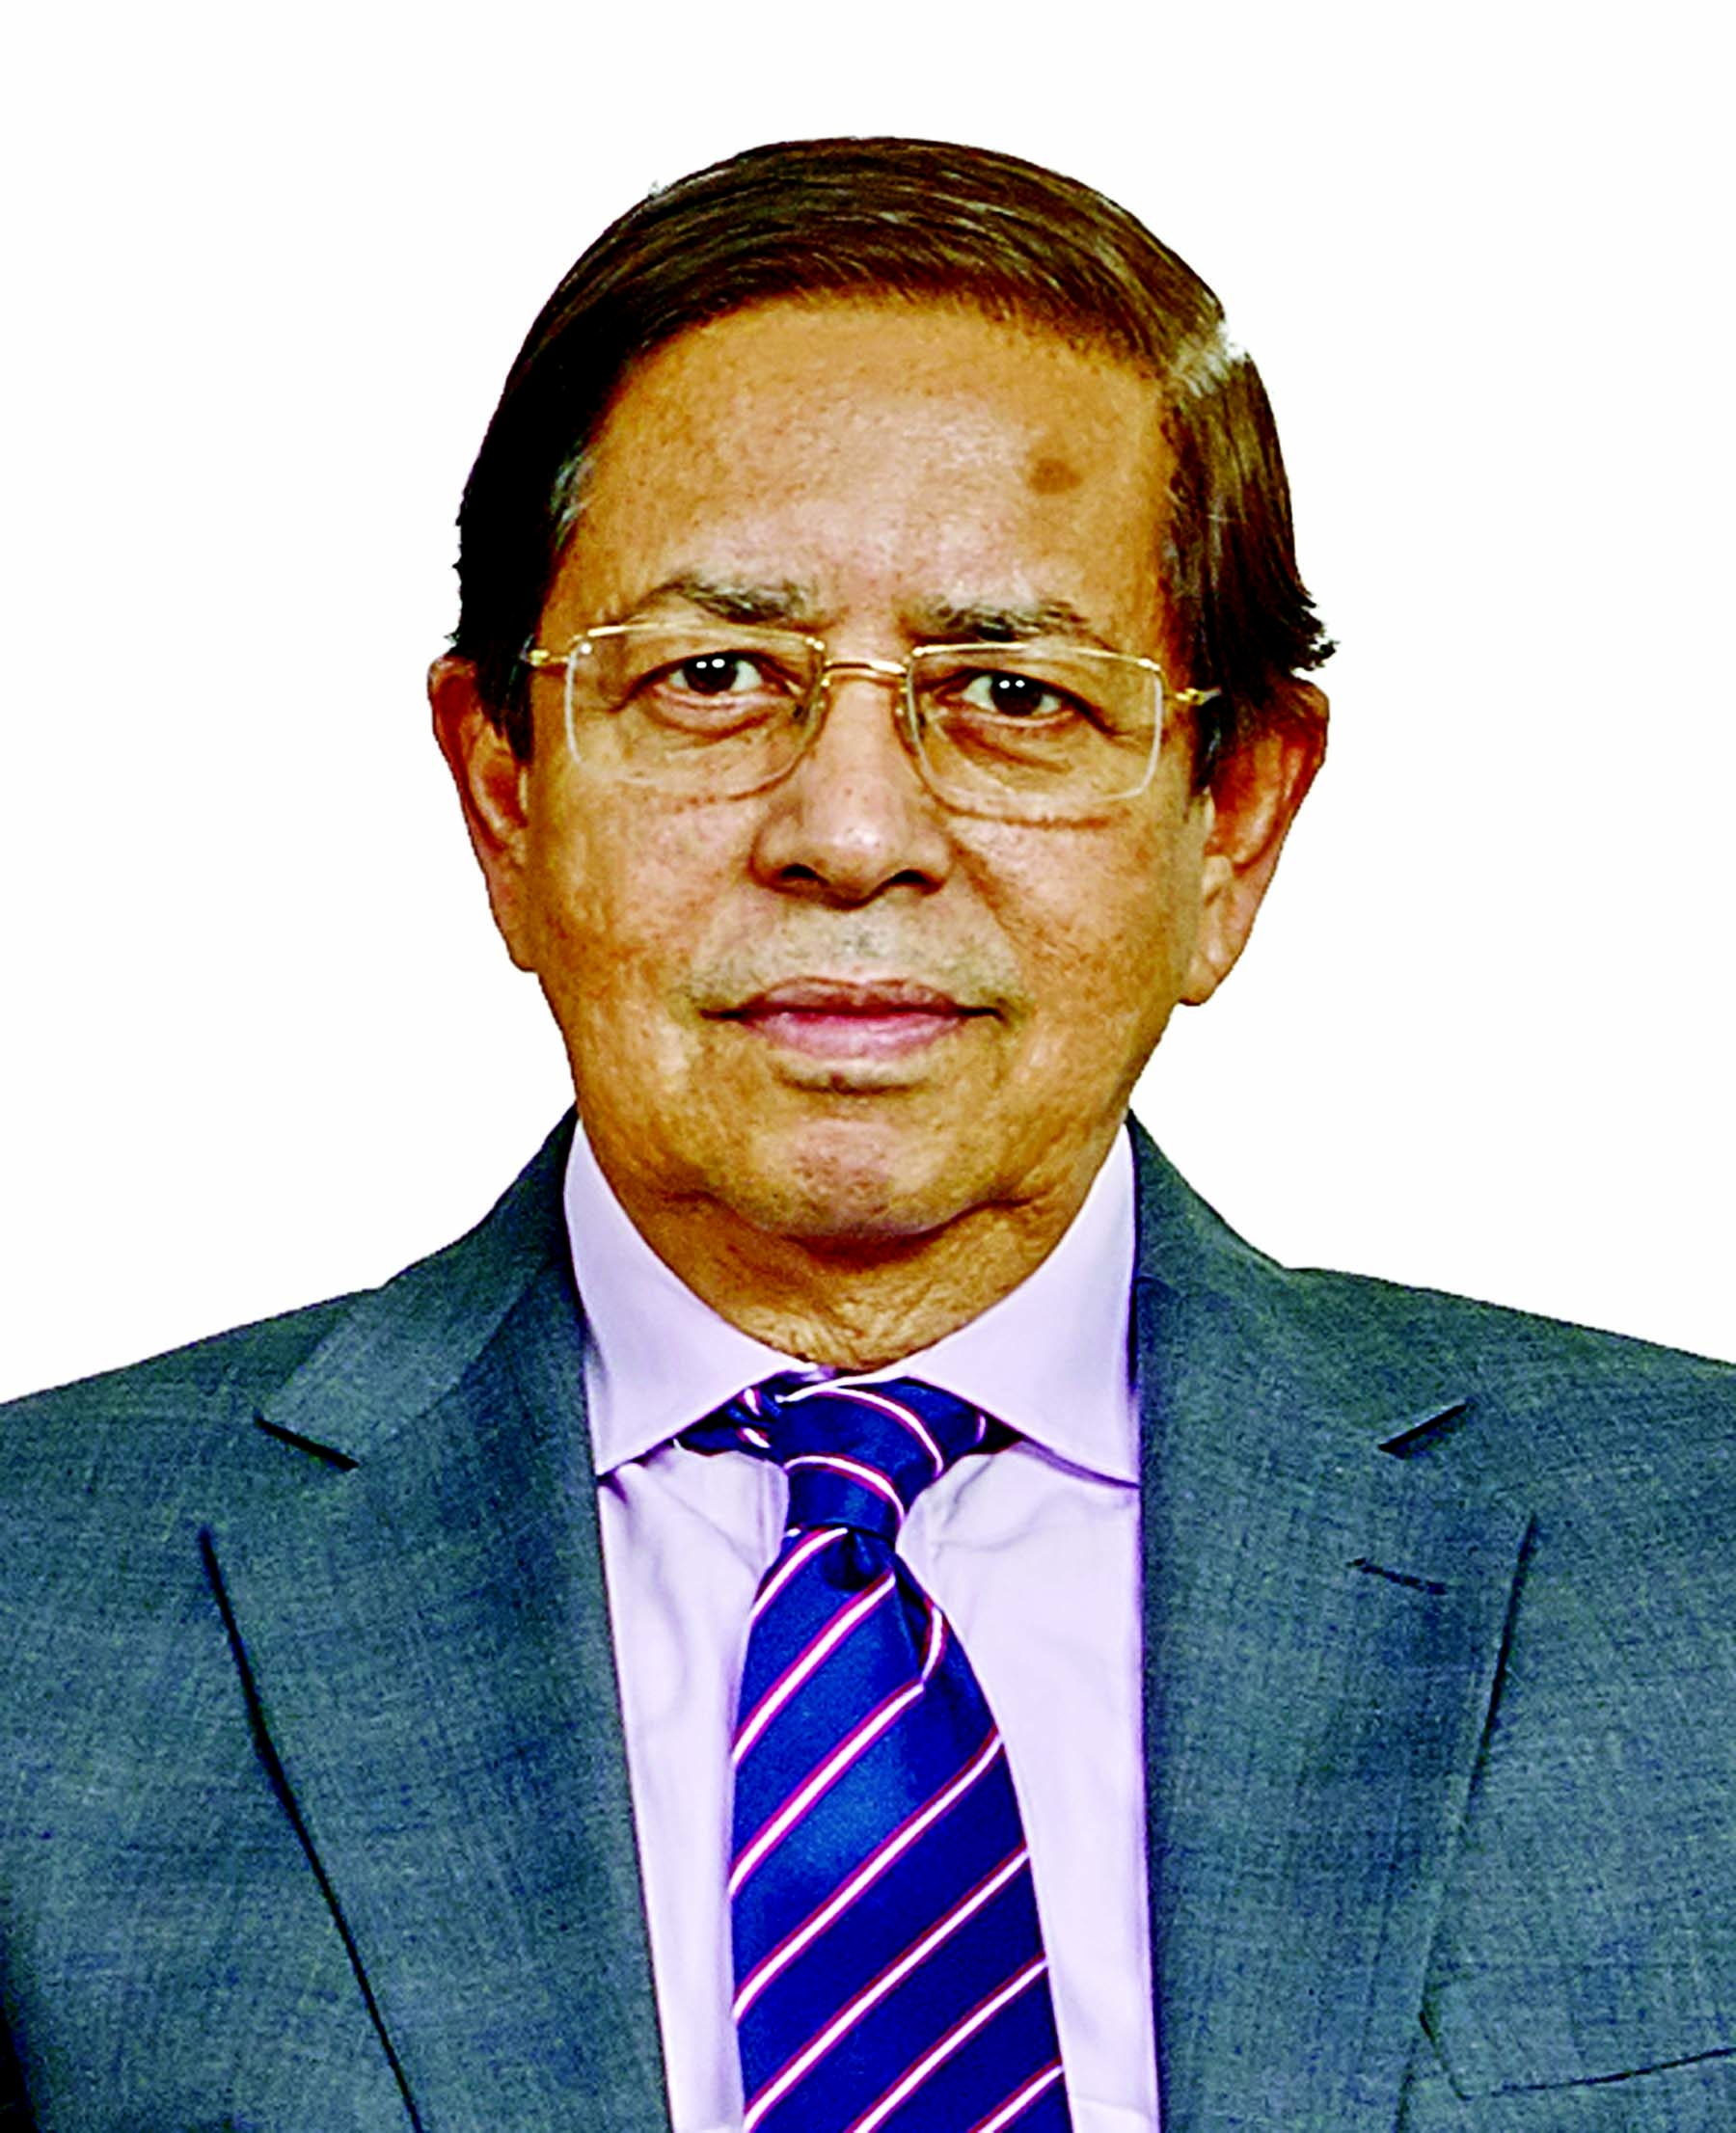 Safwan re-elected Bank Asia Vice Chairman